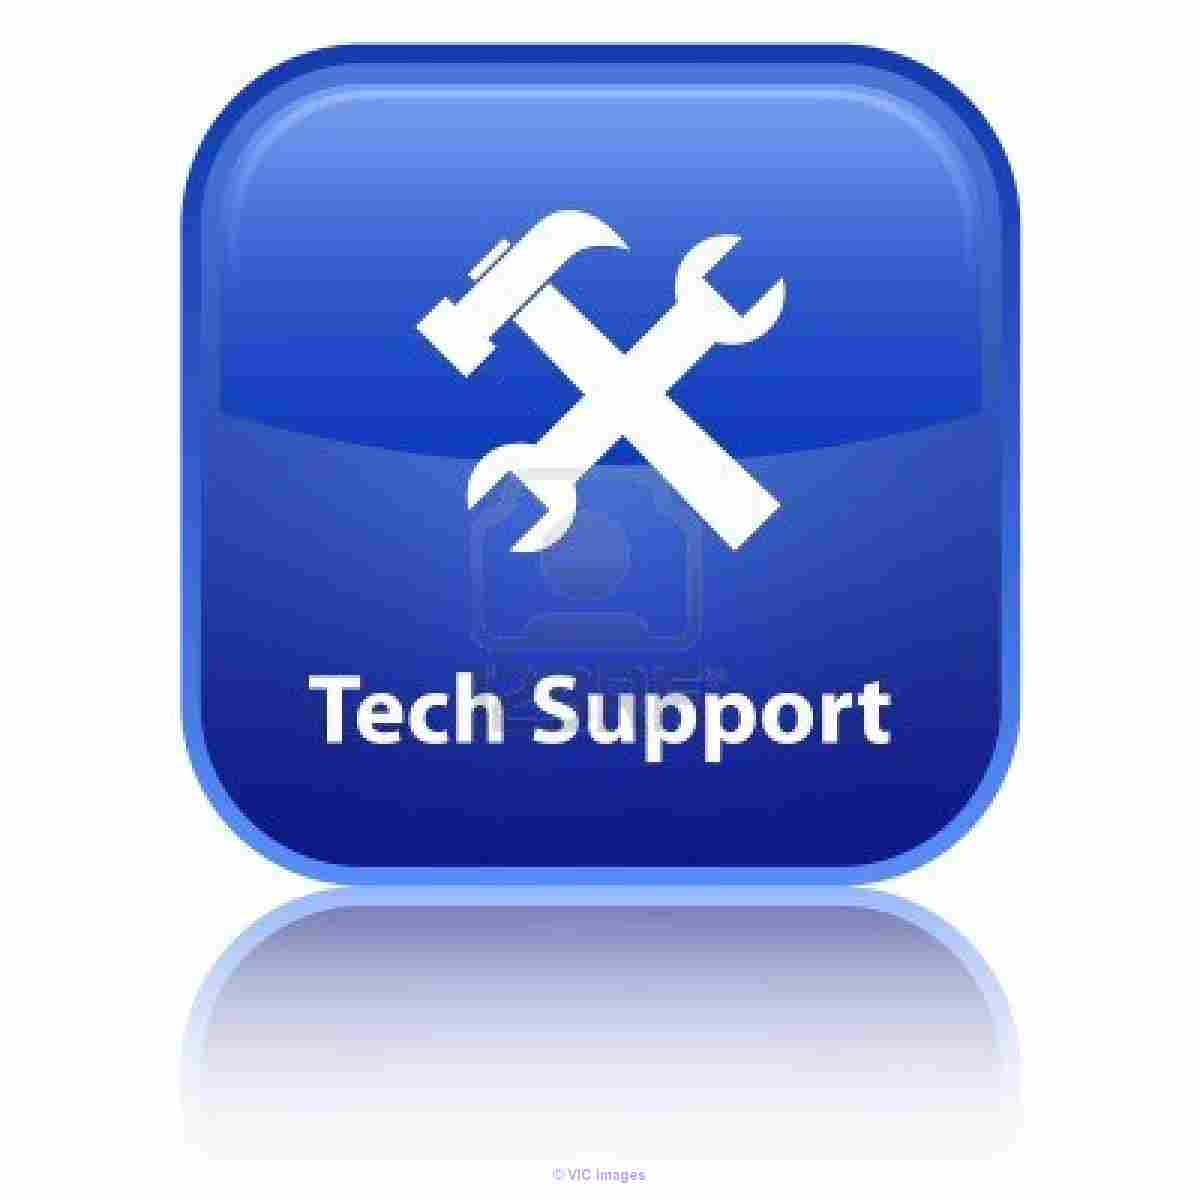 Gmail Technical Support Canada Helpline Number 1-844-888-3870 Ottawa, Ontario, Canada Classifieds